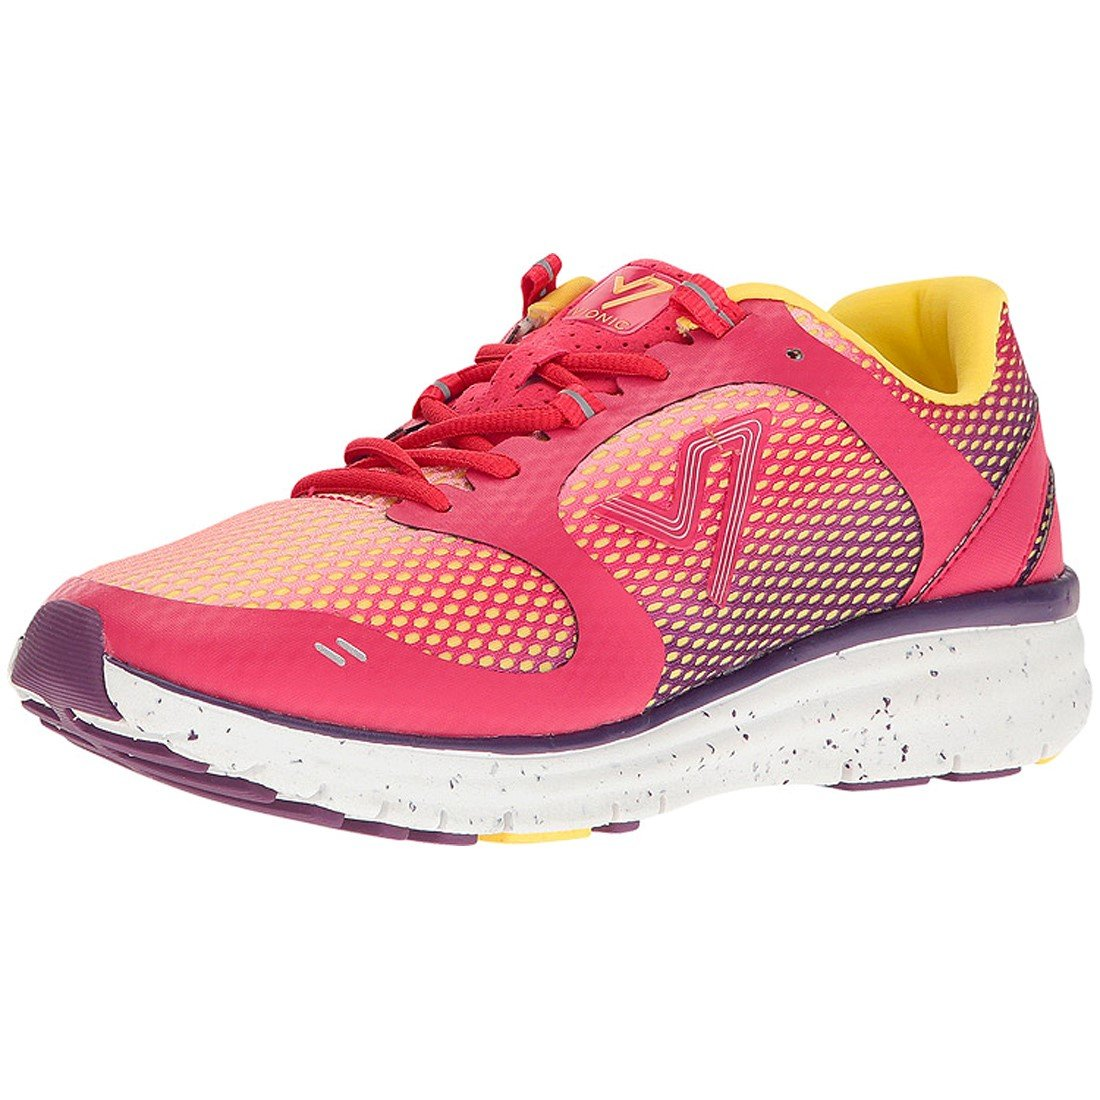 Vionic Women's Elation Active Sneaker Pink Ombre 10 M by Vionic